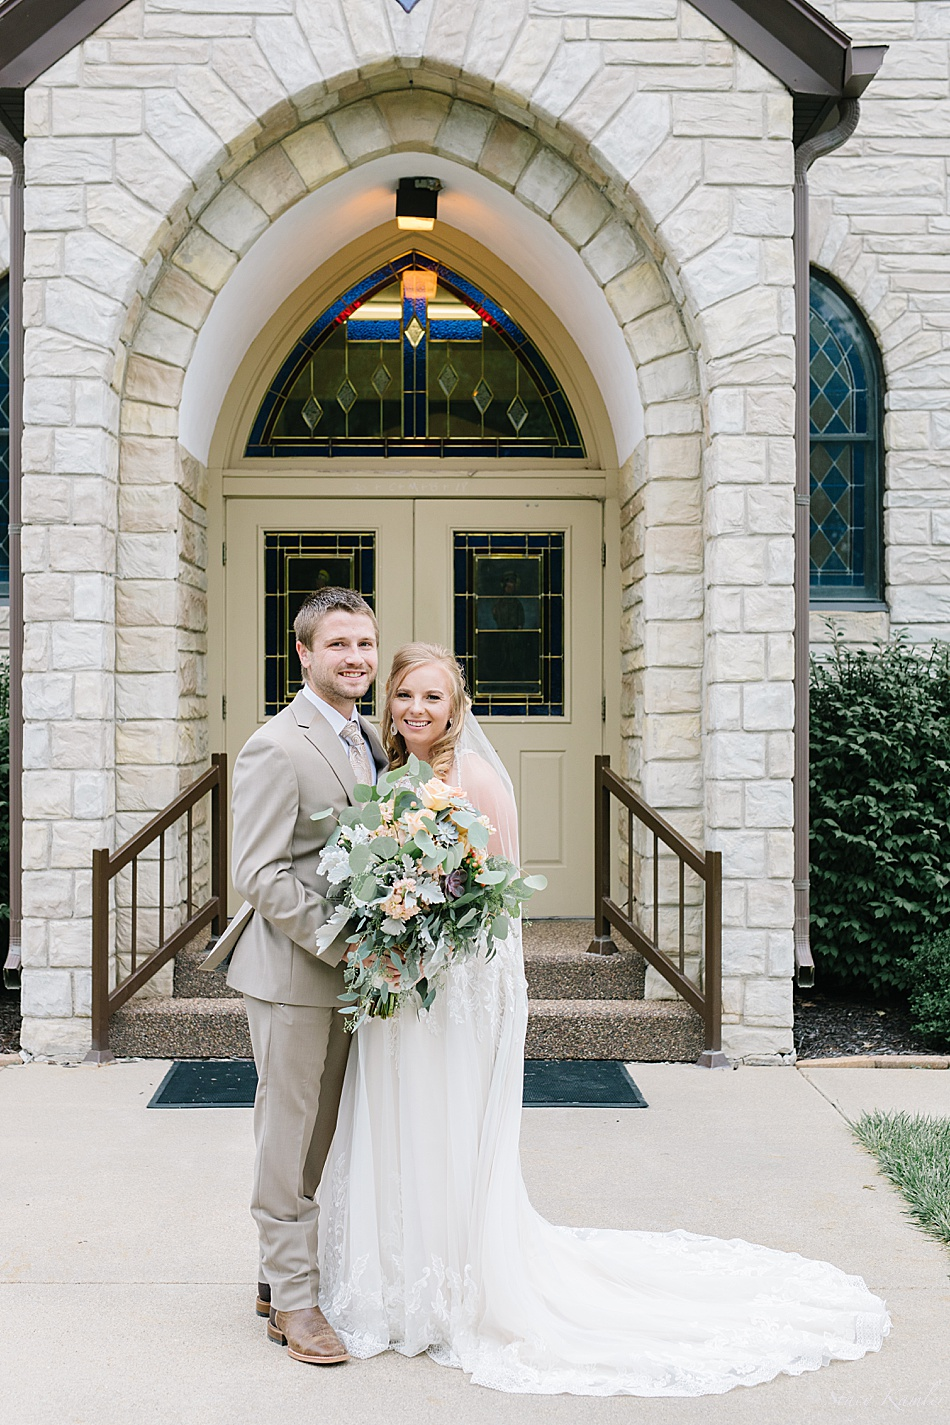 Bride and Groom in front of Saint Wenceslaus Catholic Church in Wilbur, NE